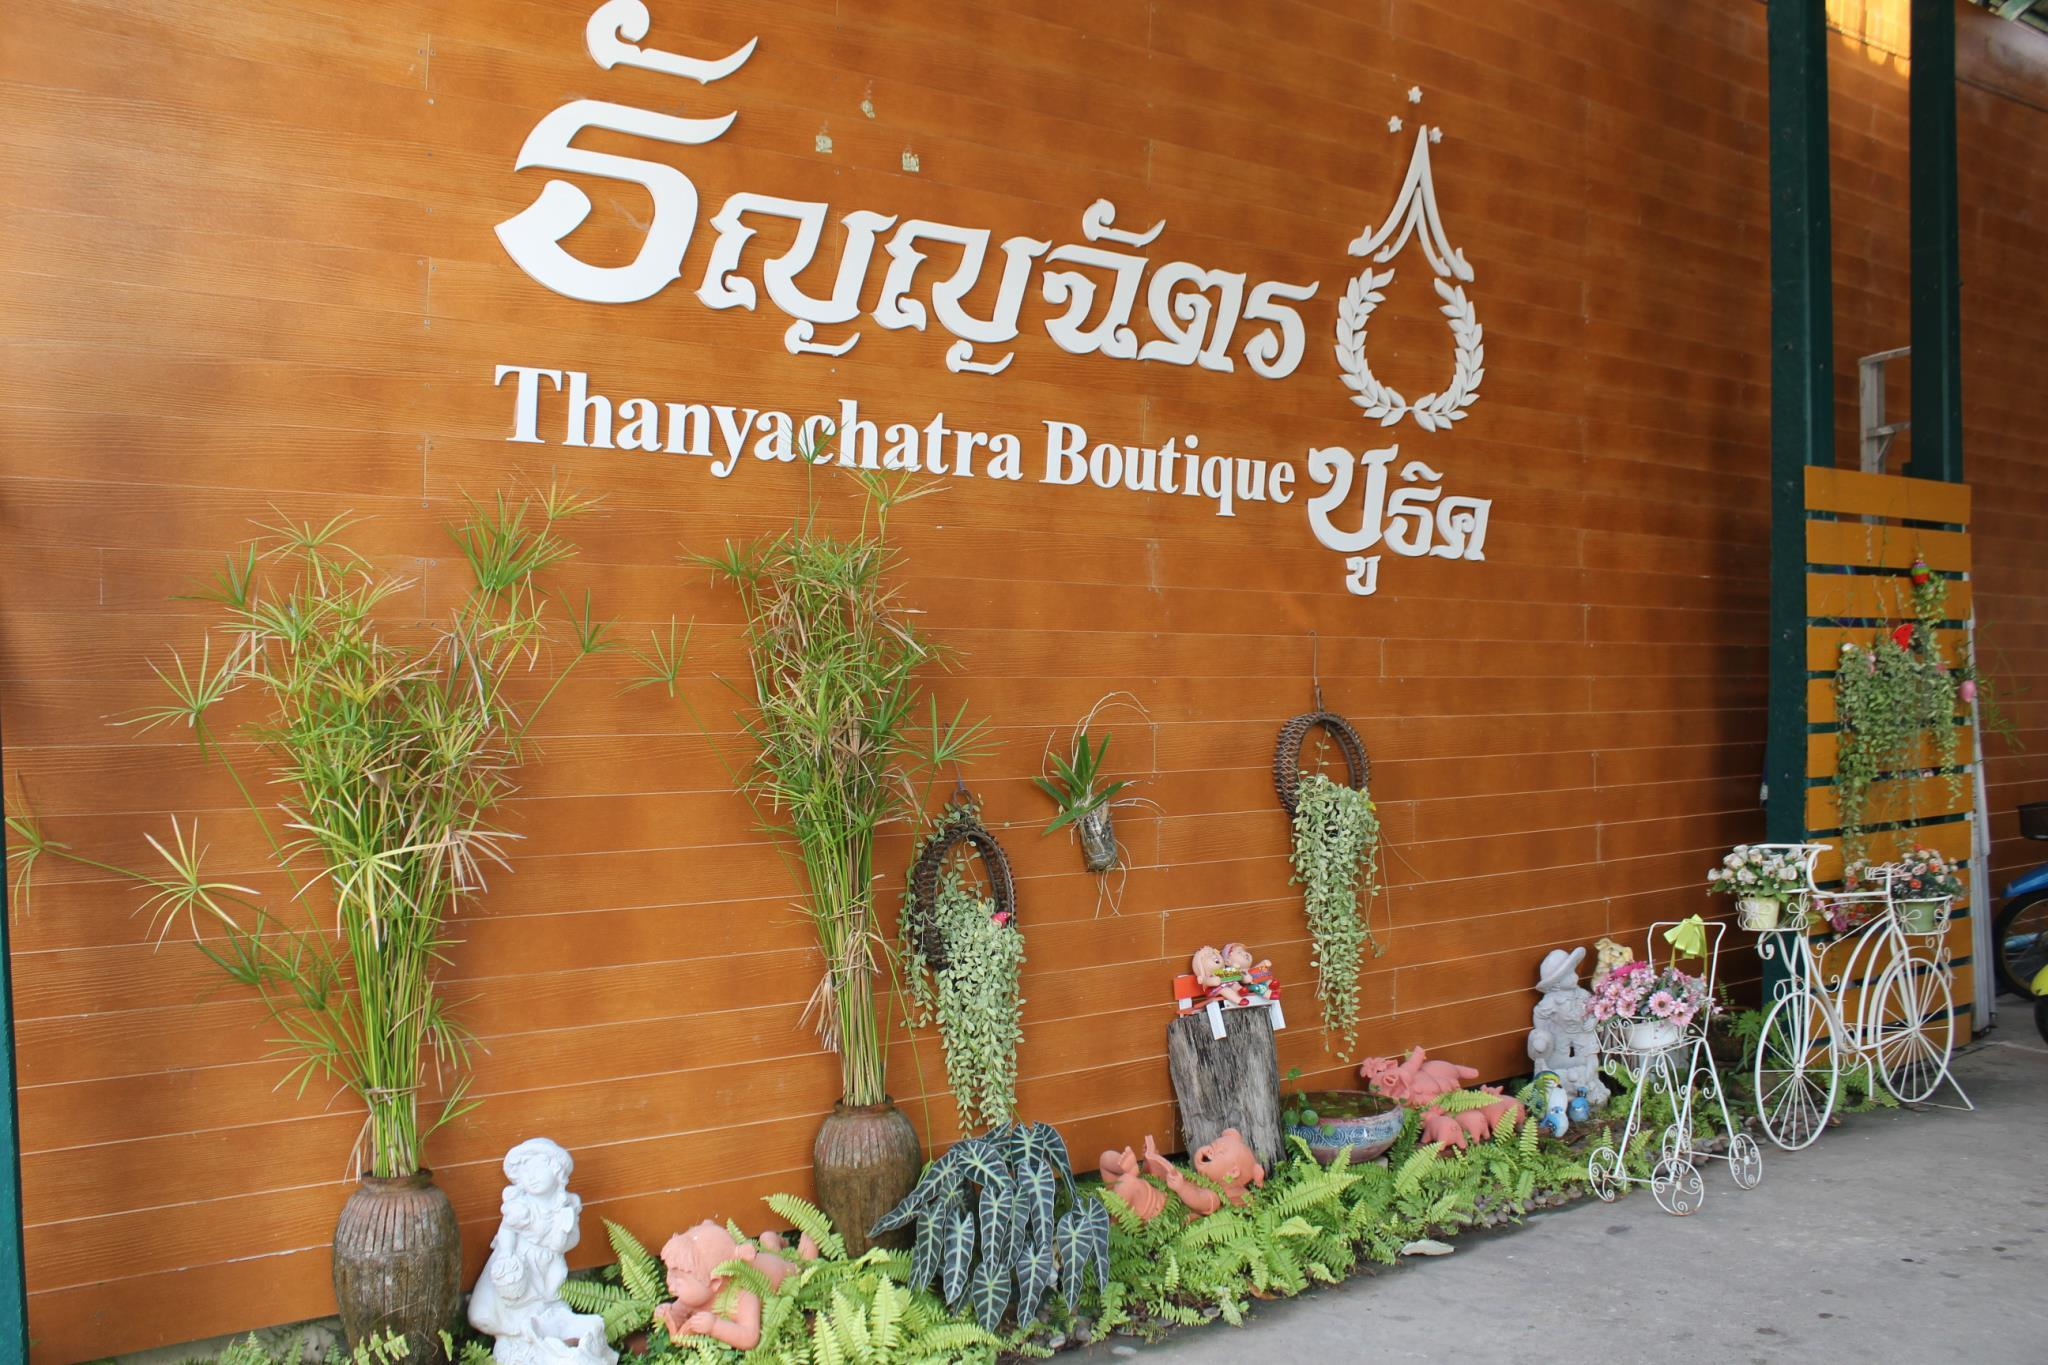 Thanyachatra Boutique.